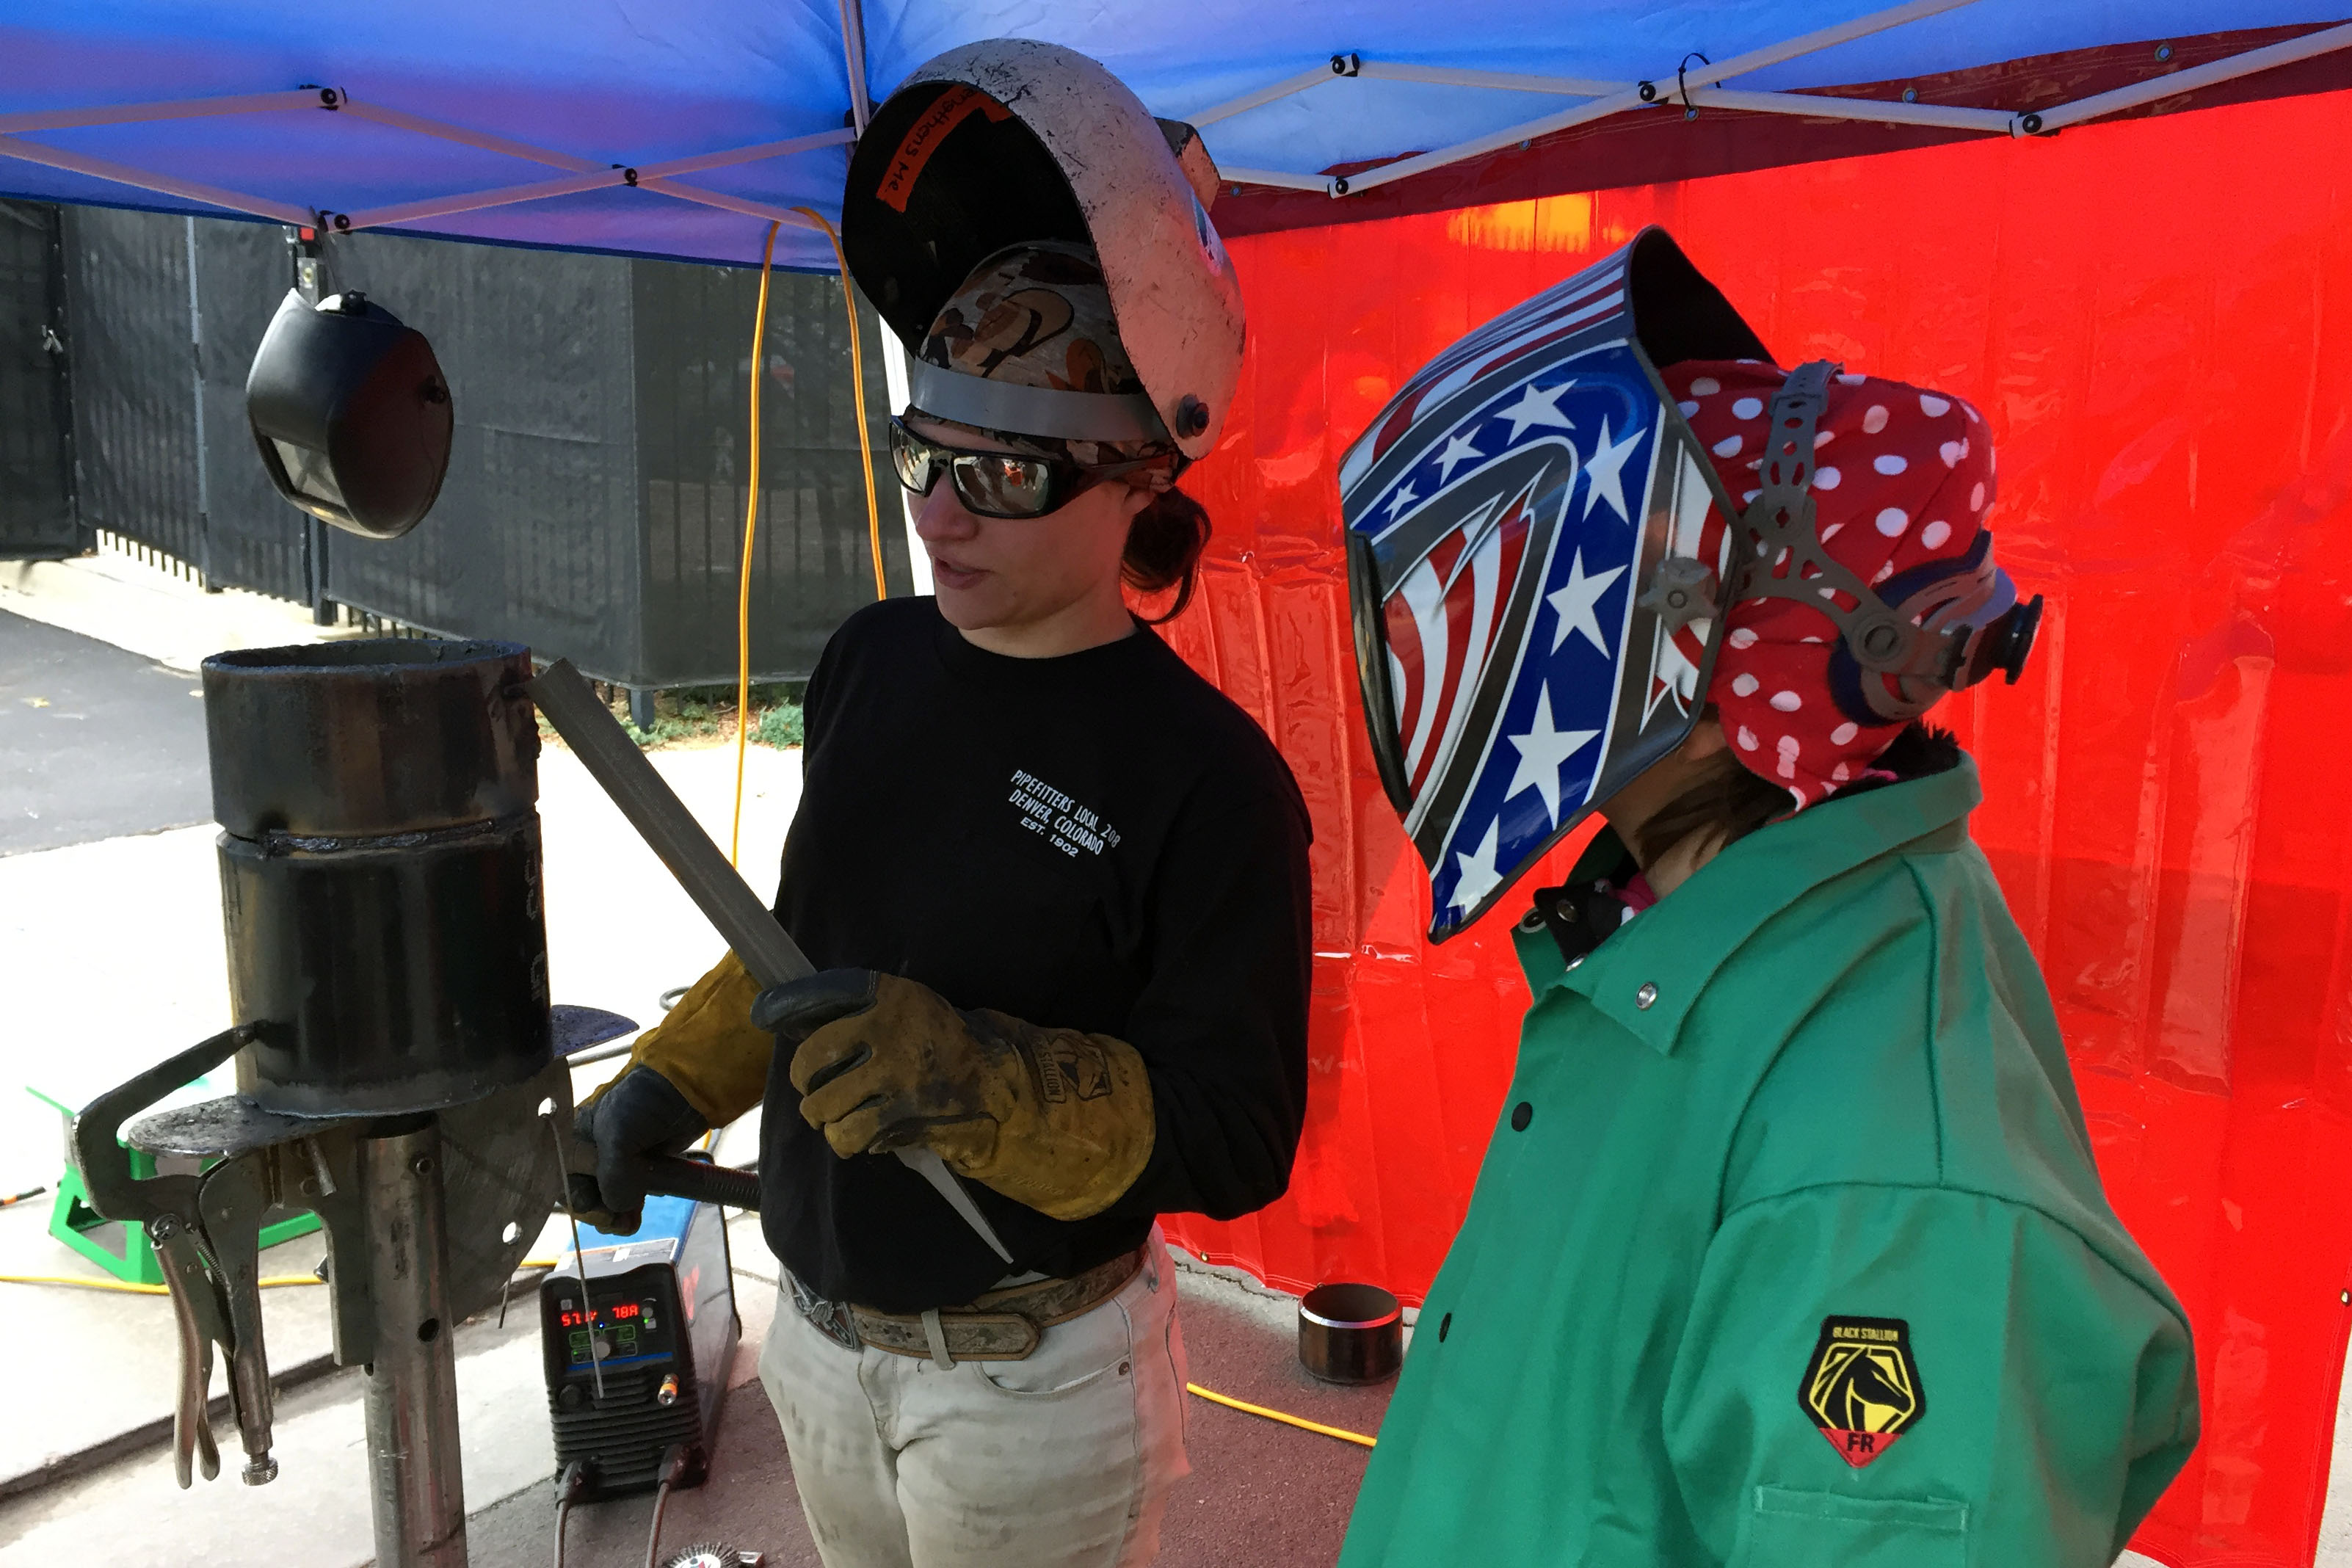 """<p>Rachel Neeb (left), a second-yearpipefitting apprentice, shows 12-year-old RaynaJeannelle(right) how to weld. The two were attending the Transportation and Construction Girl career fair at the<span style=""""color: rgb(64, 69, 64);"""">Renaissance Hotel Stapleton in Denver. The annual event exposes young girls and teenagers to jobs in male-dominated fields.</span></p>"""